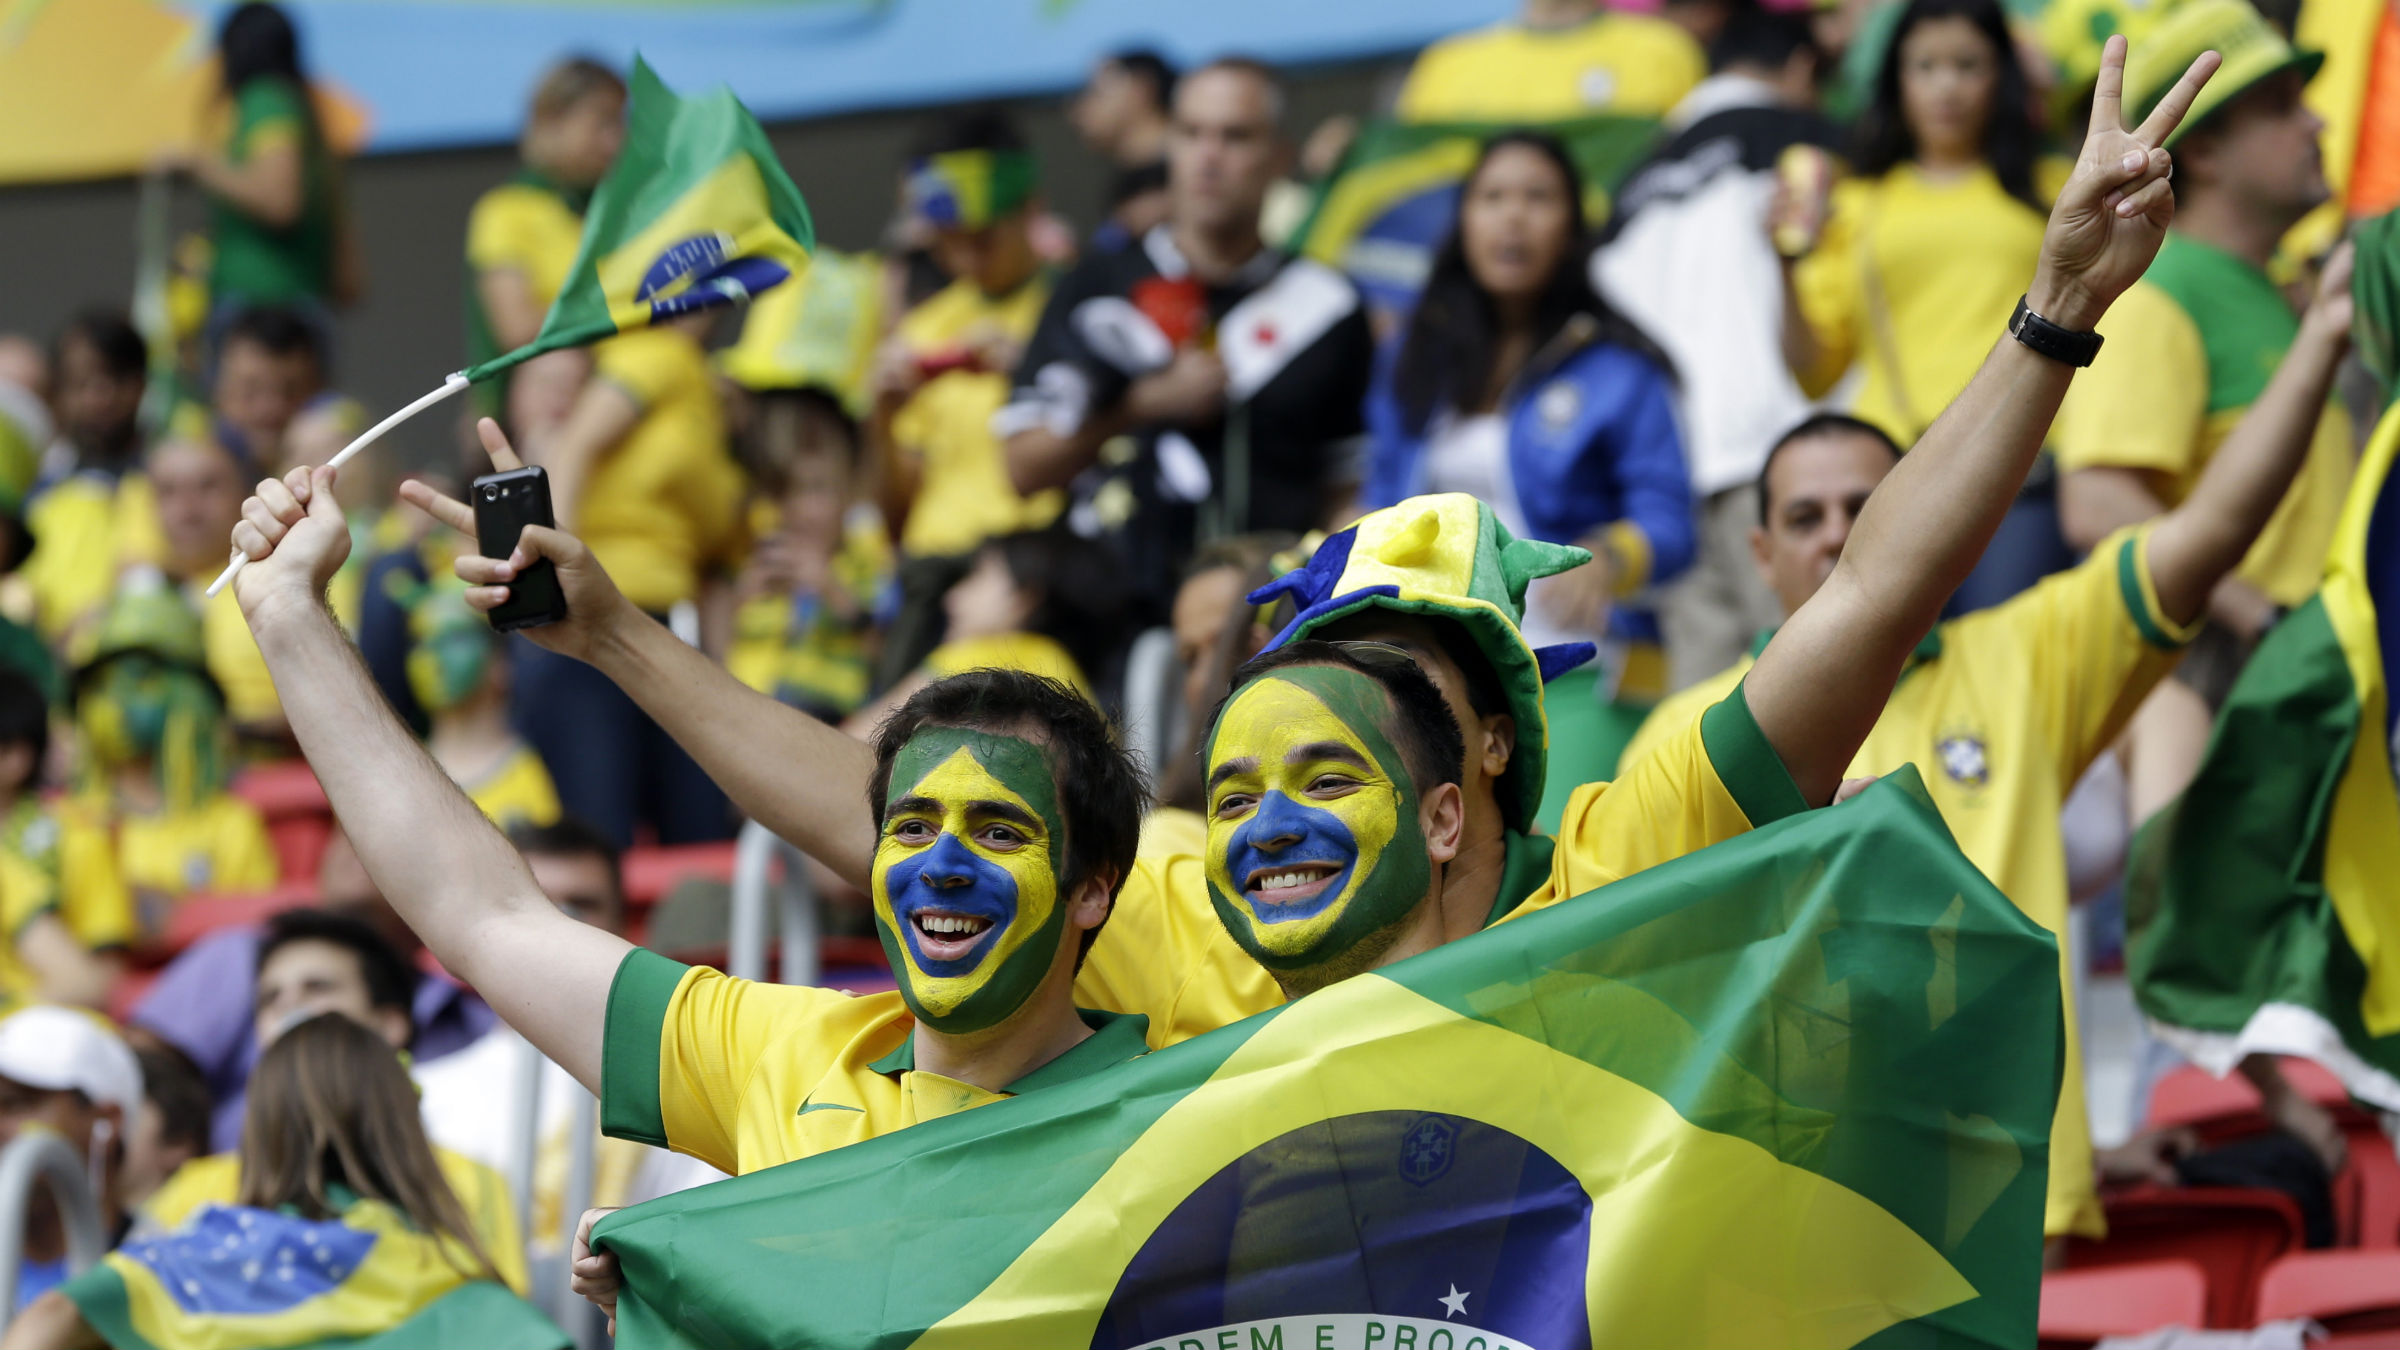 Brazil fans smile prior to the group A World Cup soccer match between Cameroon and Brazil at the Estadio Nacional in Brasilia, Brazil, Monday, June 23, 2014.